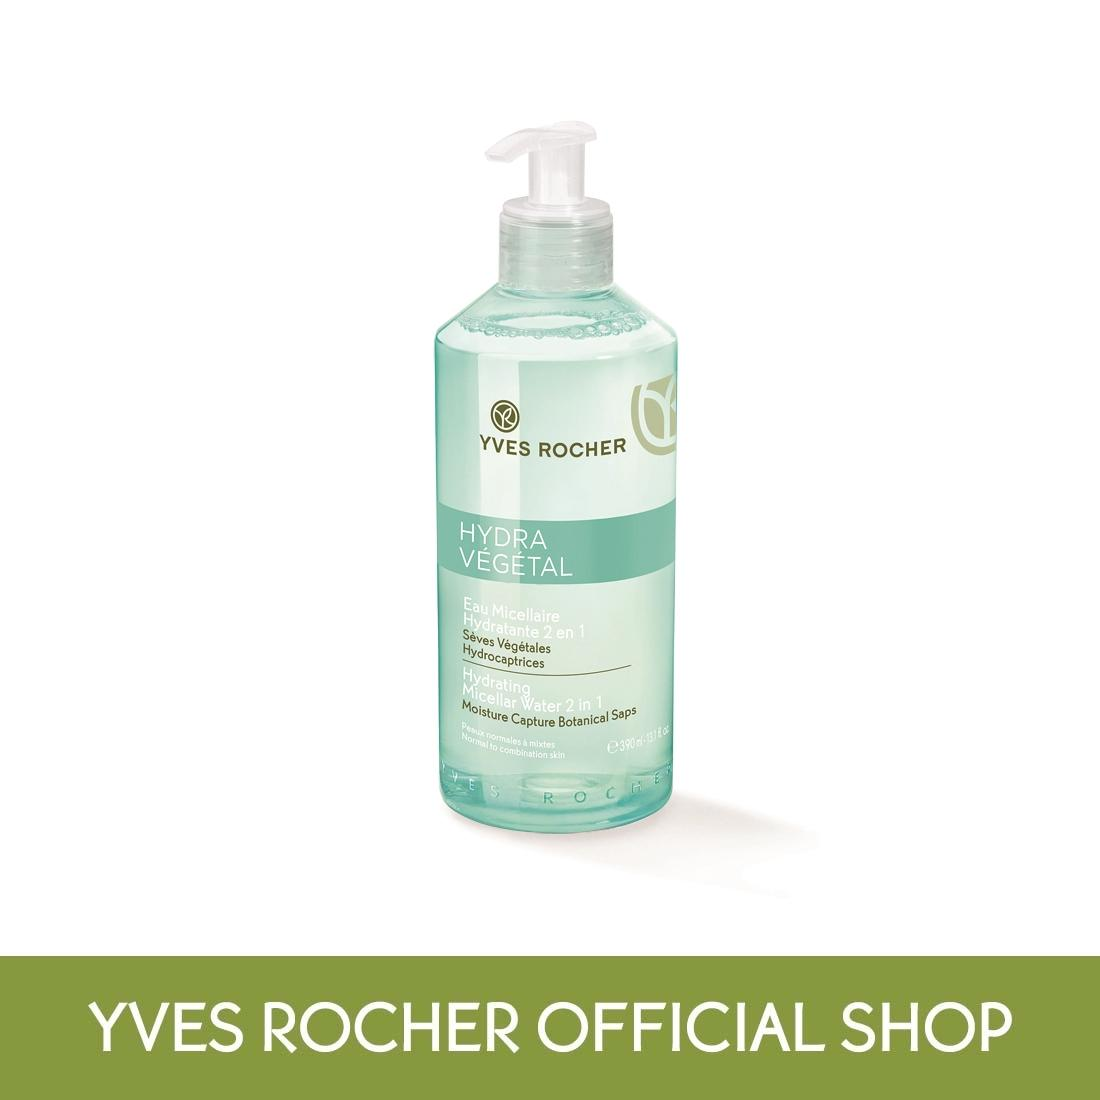 Yves Rocher Hydra Vegetal Hydrating Micellar Water 2 In 1 390Ml Deal